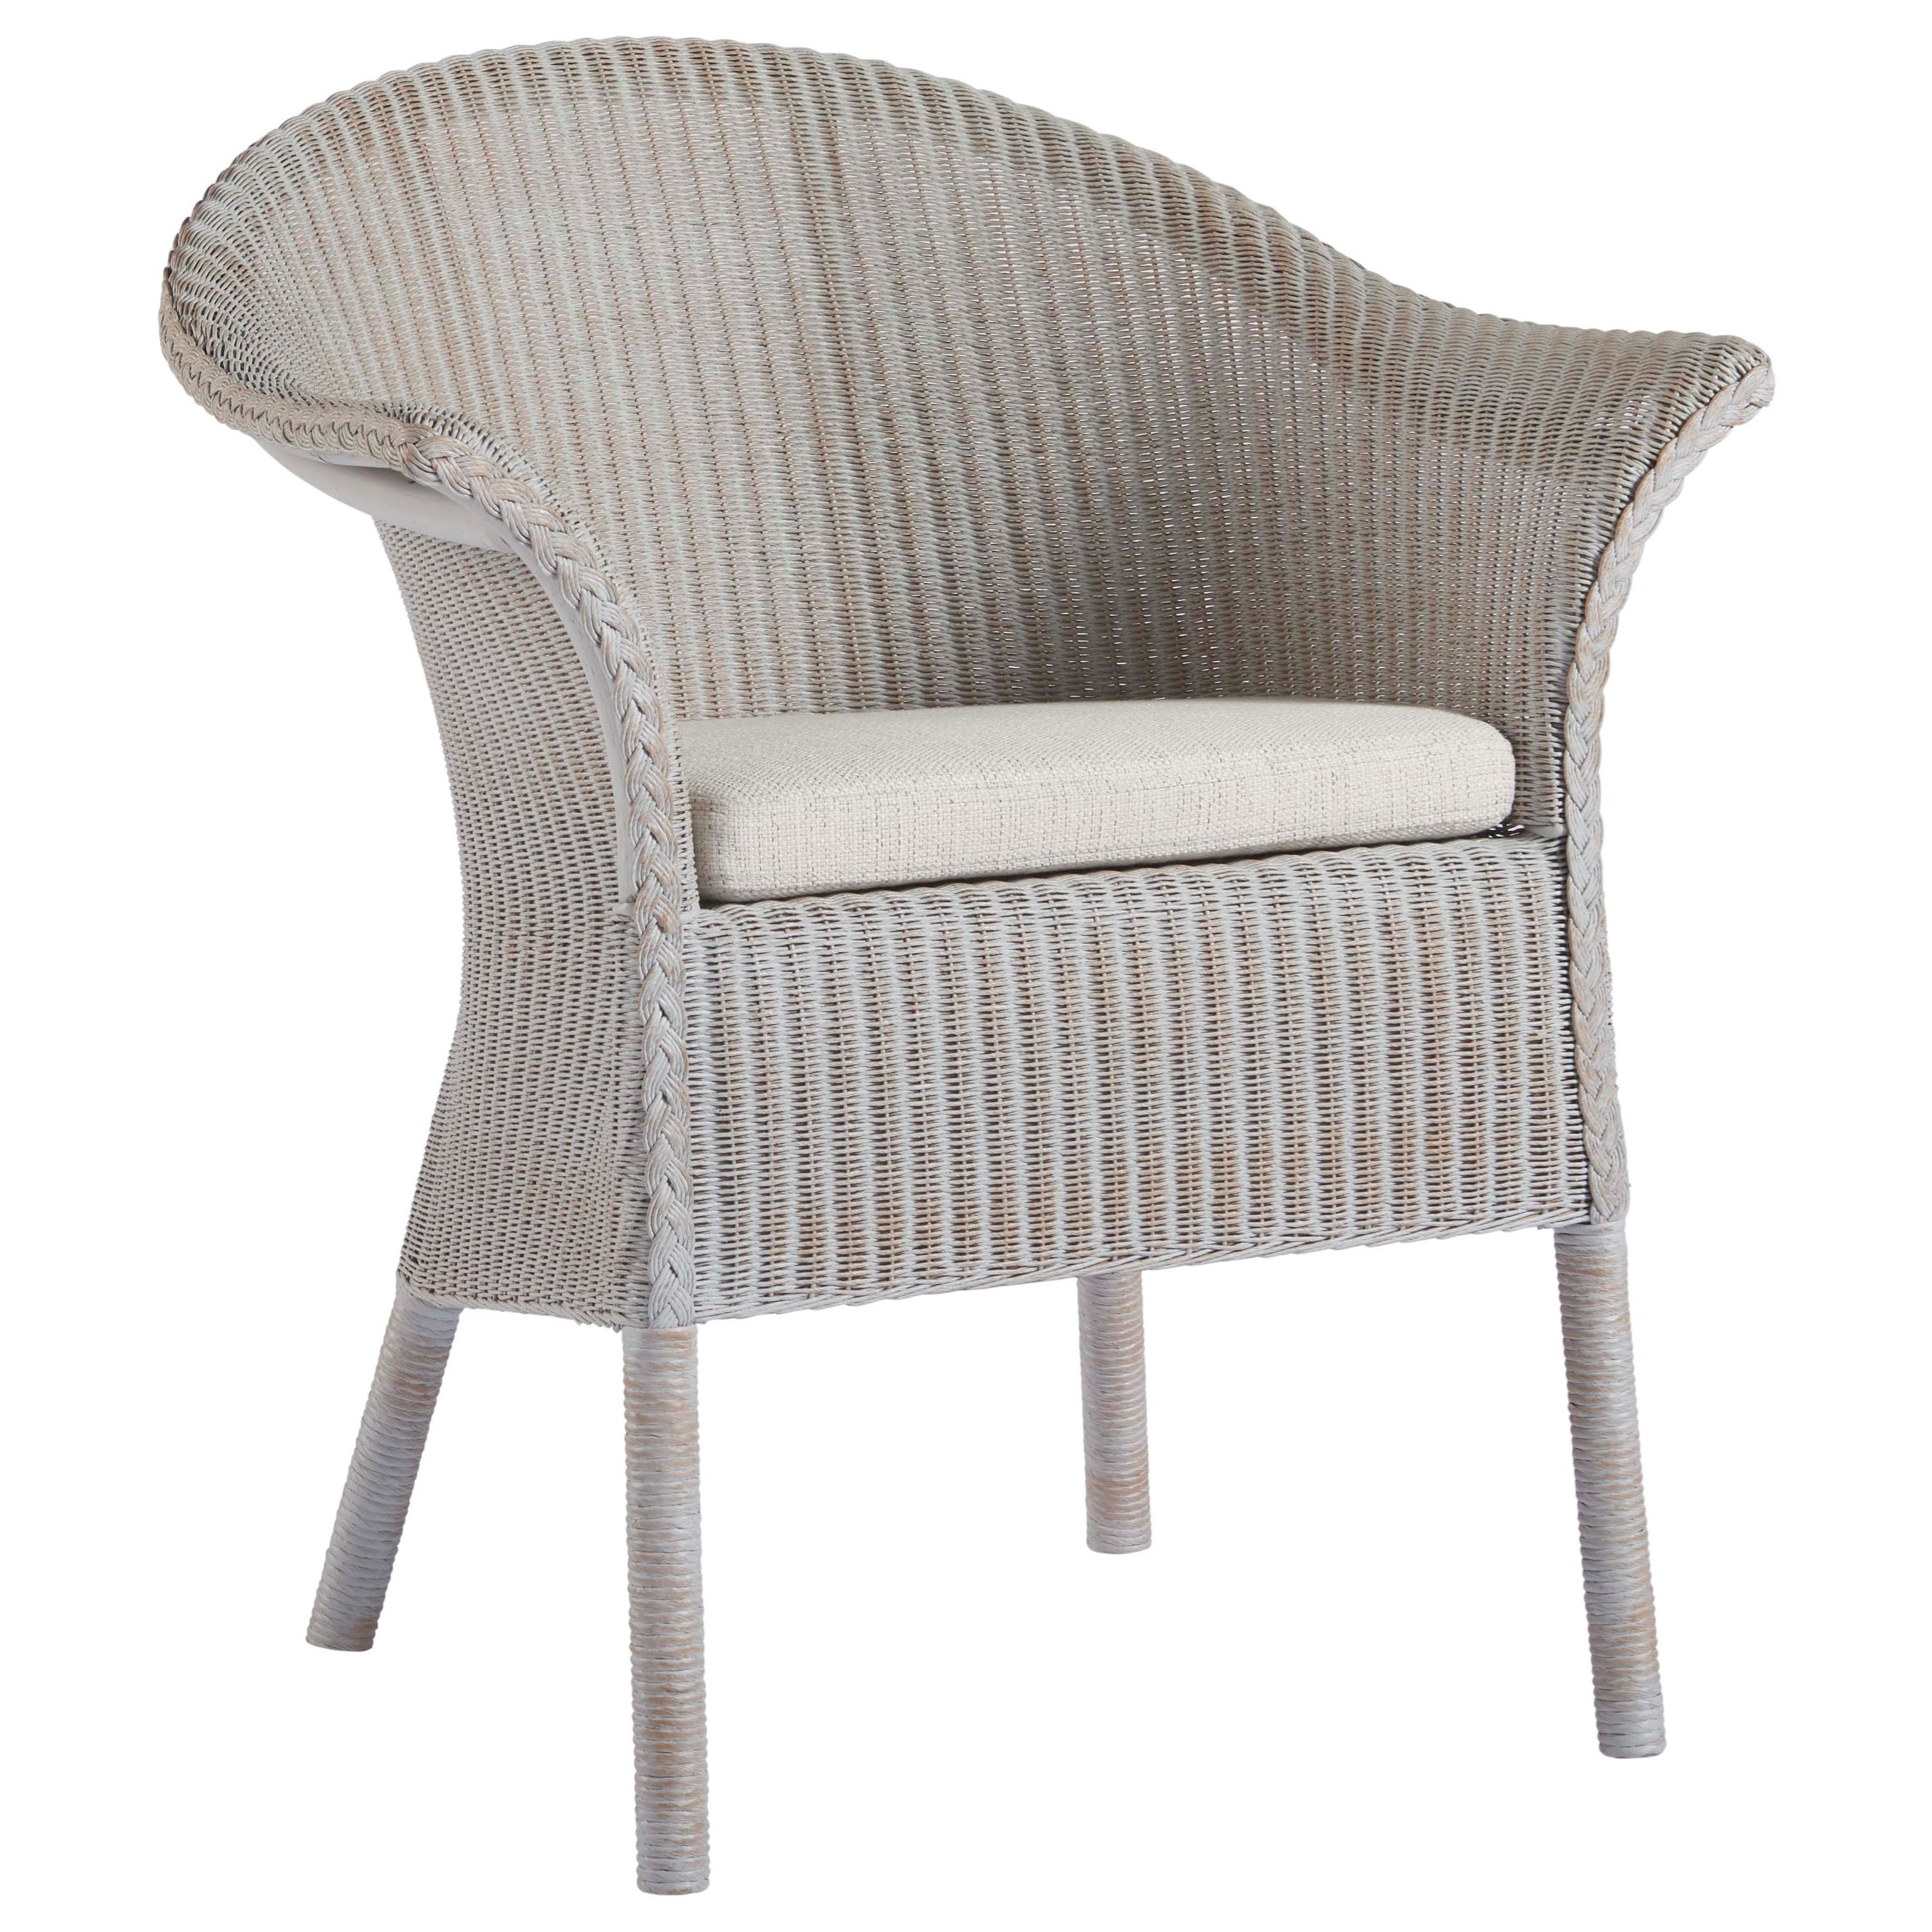 Coastal Living Home - Escape Bar Harbor Dining and Accent Chair by Universal at Baer's Furniture